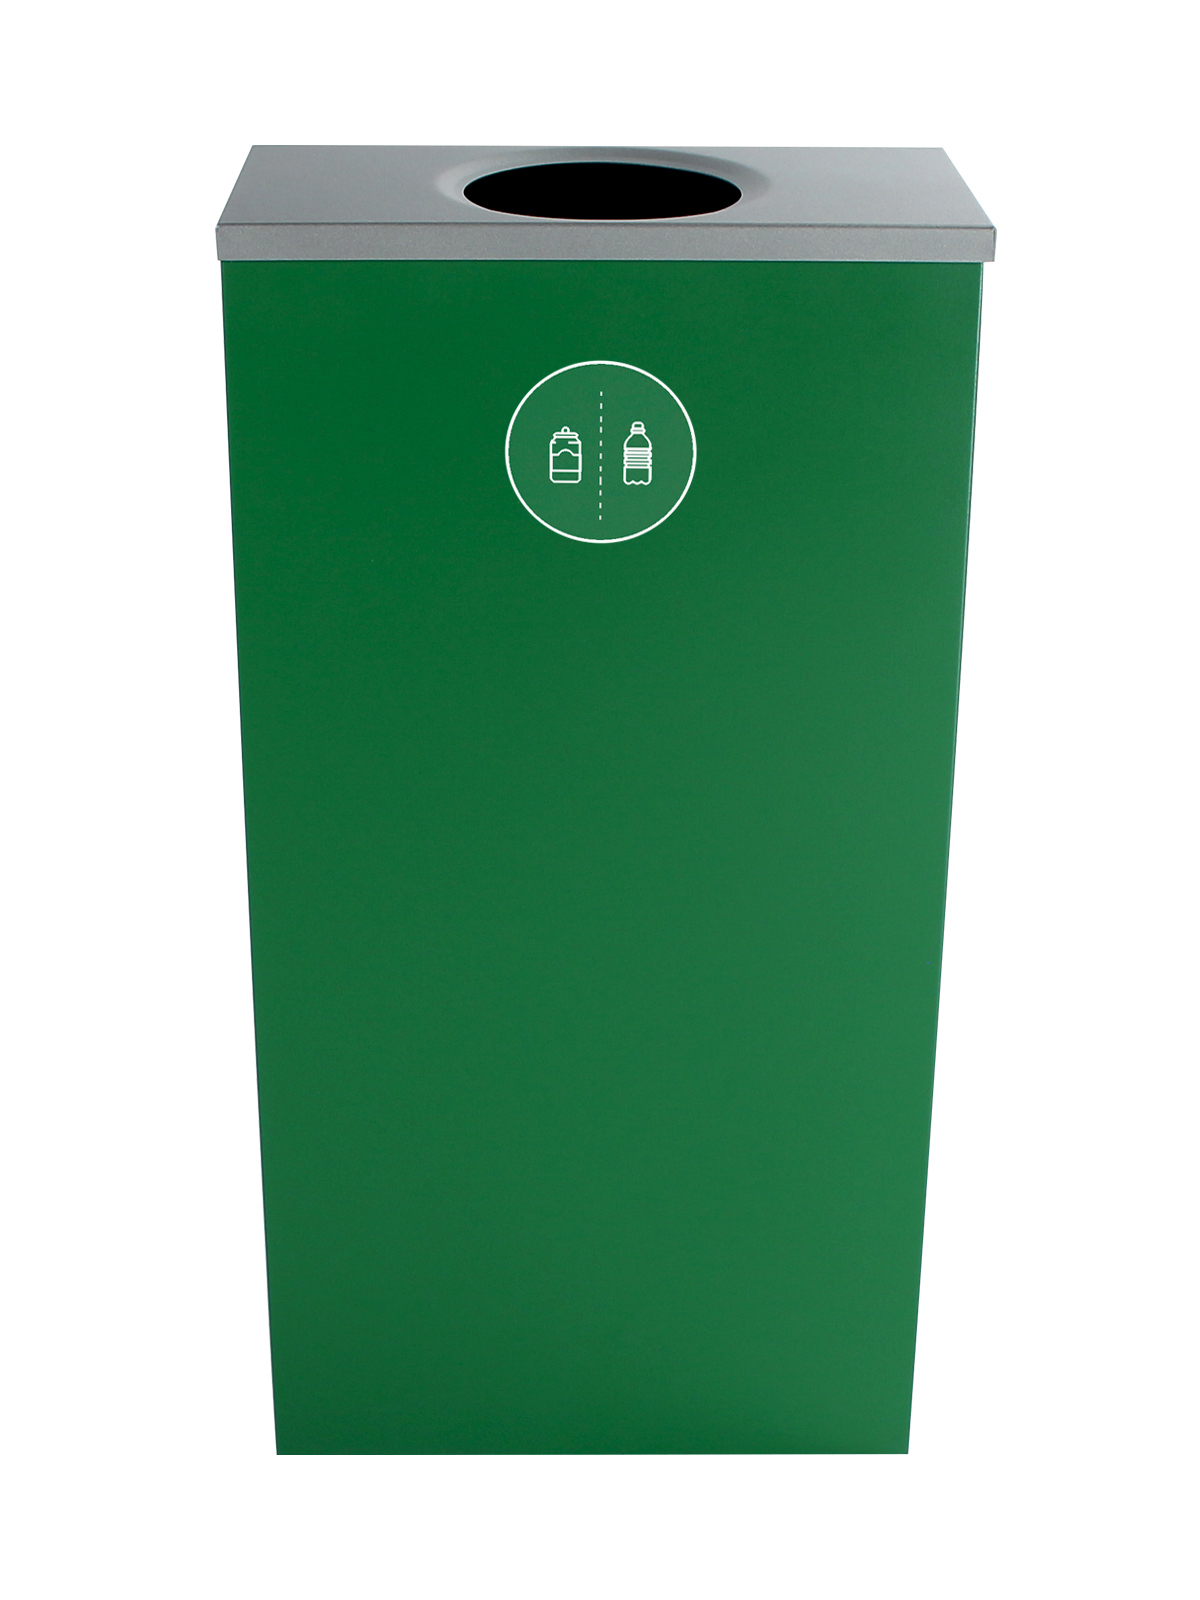 SPECTRUM - Single - Cube Slim - Cans & Bottles - Circle - Dark Green